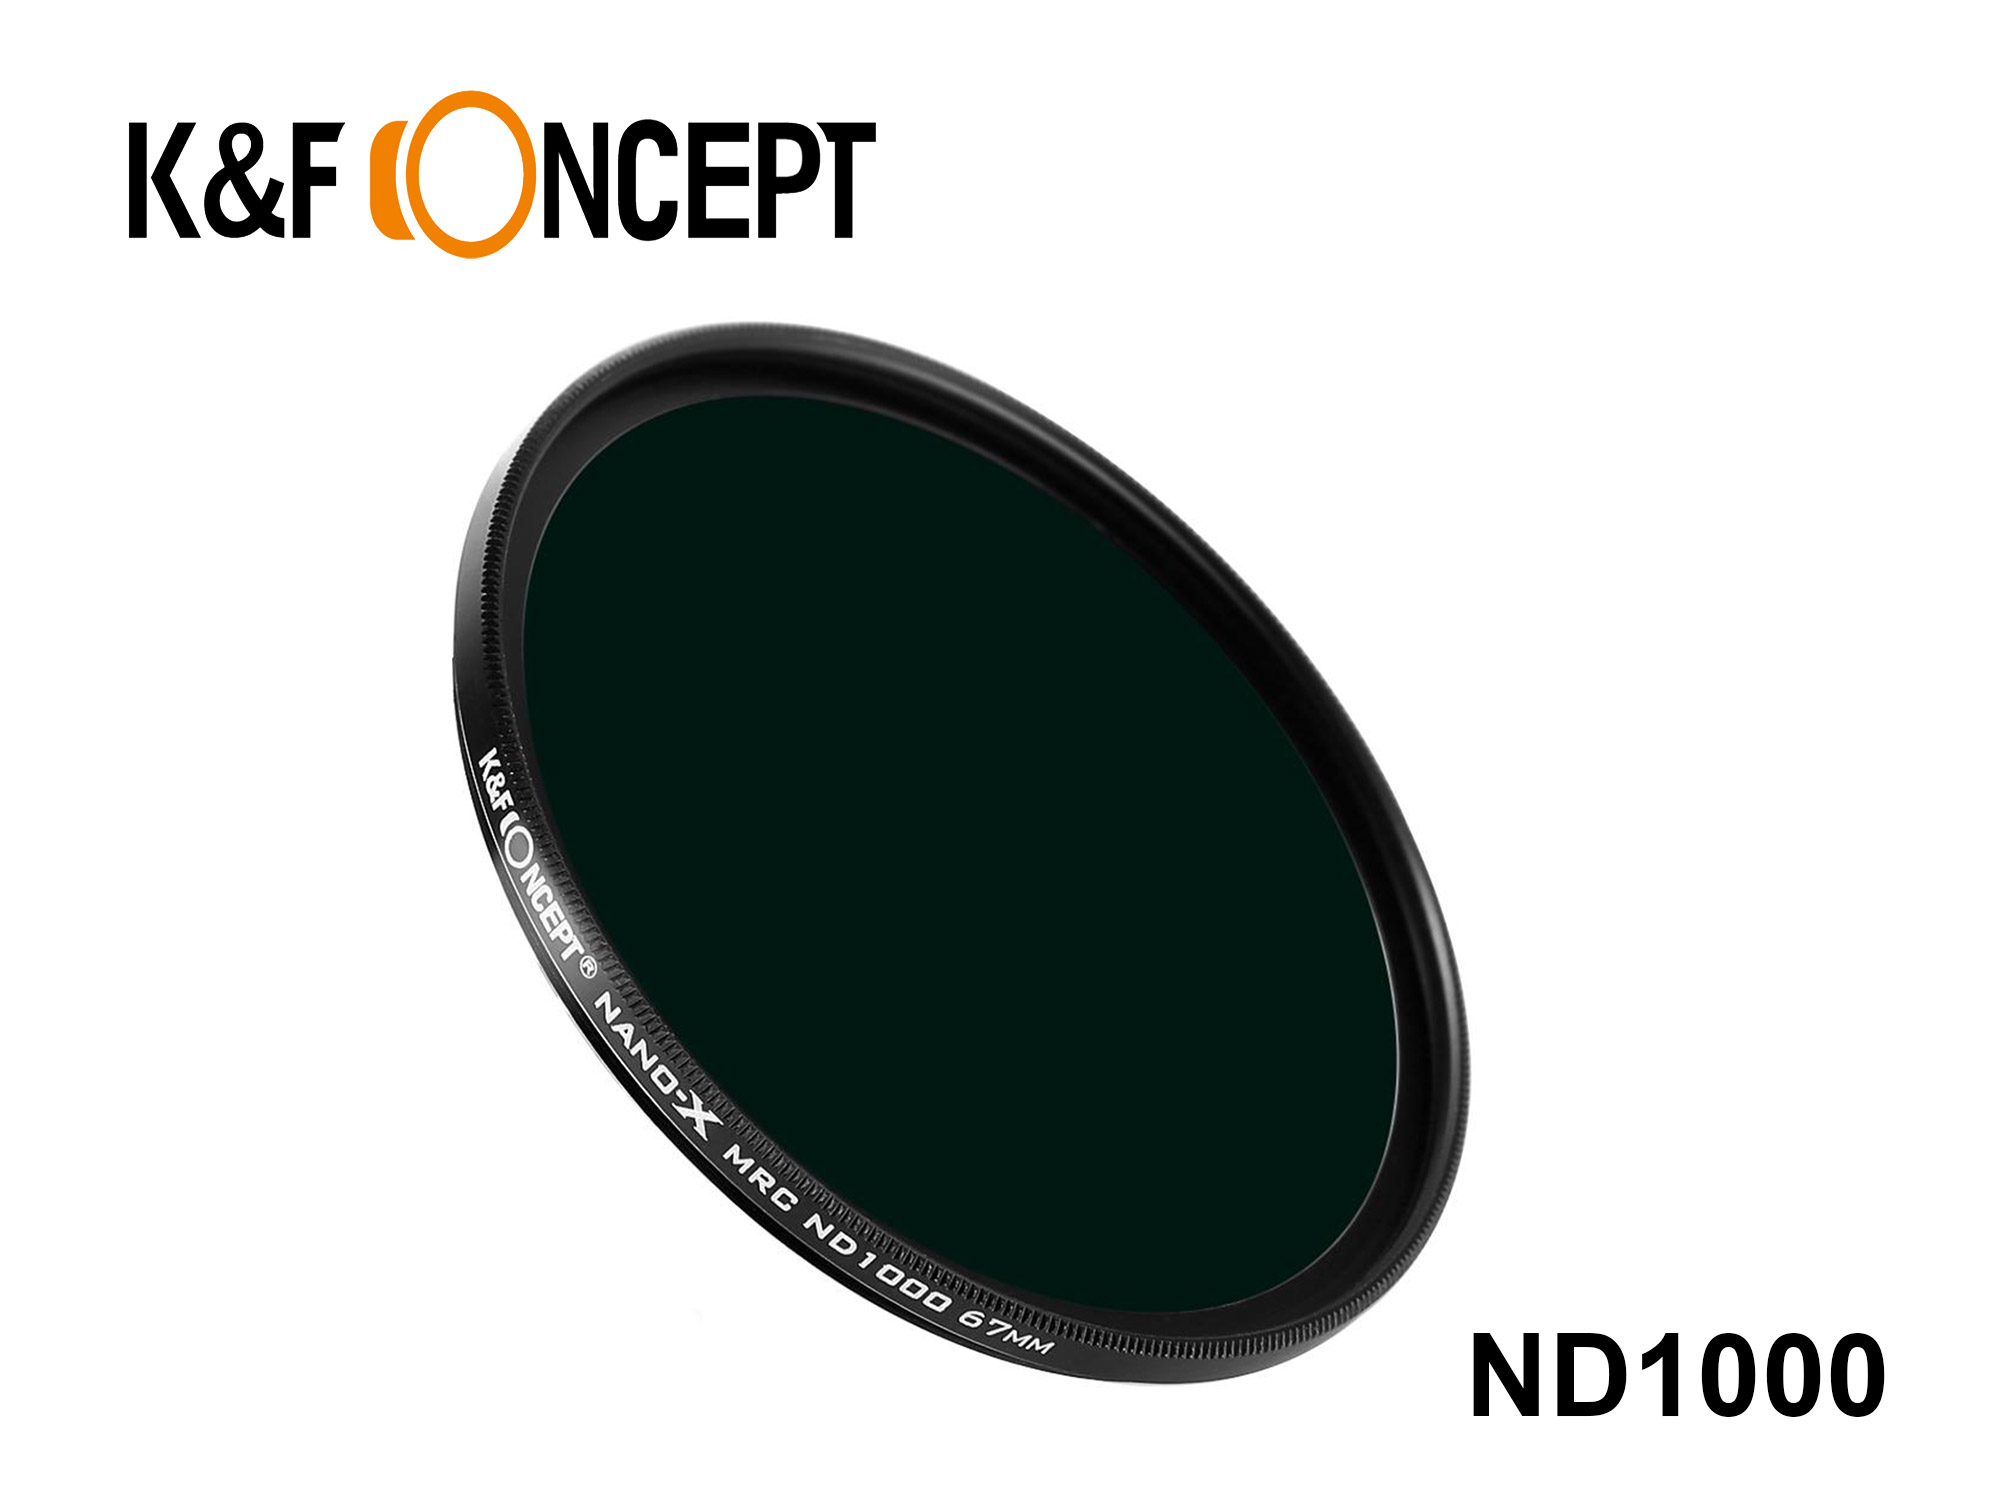 KND1000-77 - Neutral Density ND1000 Filter - Nano-X 77mm